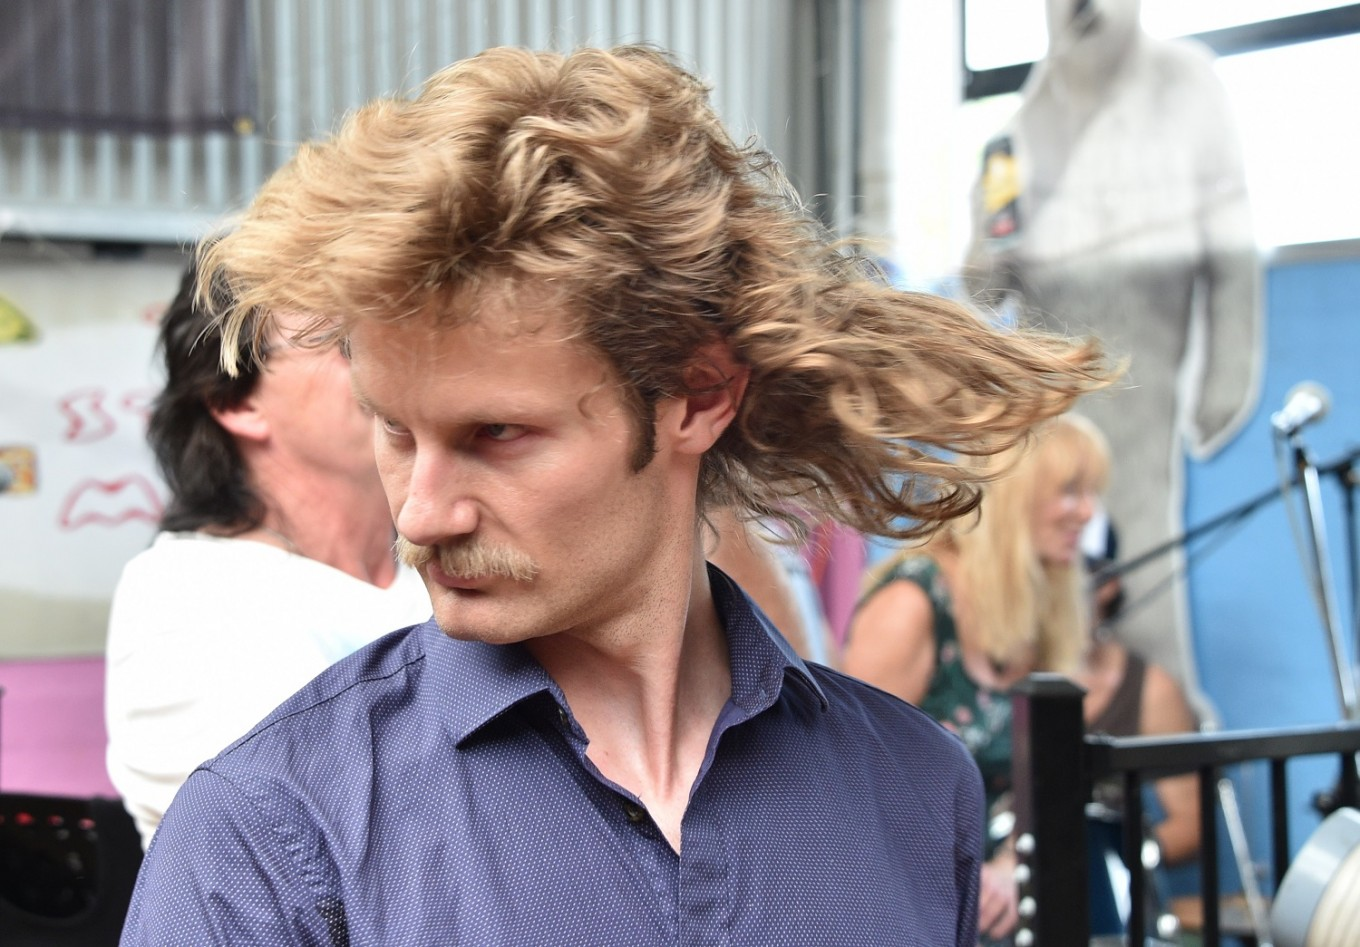 A man shows off his mullet haircut at Mulletfest 2018 in the town of Kurri Kurri, 150 kilometers north of Sydney on February 24, 2018. Mulletfest is a celebration of the iconic haircut called the mullet which began in the 1970s and popular in the 1980s, and making a comeback in Australia.